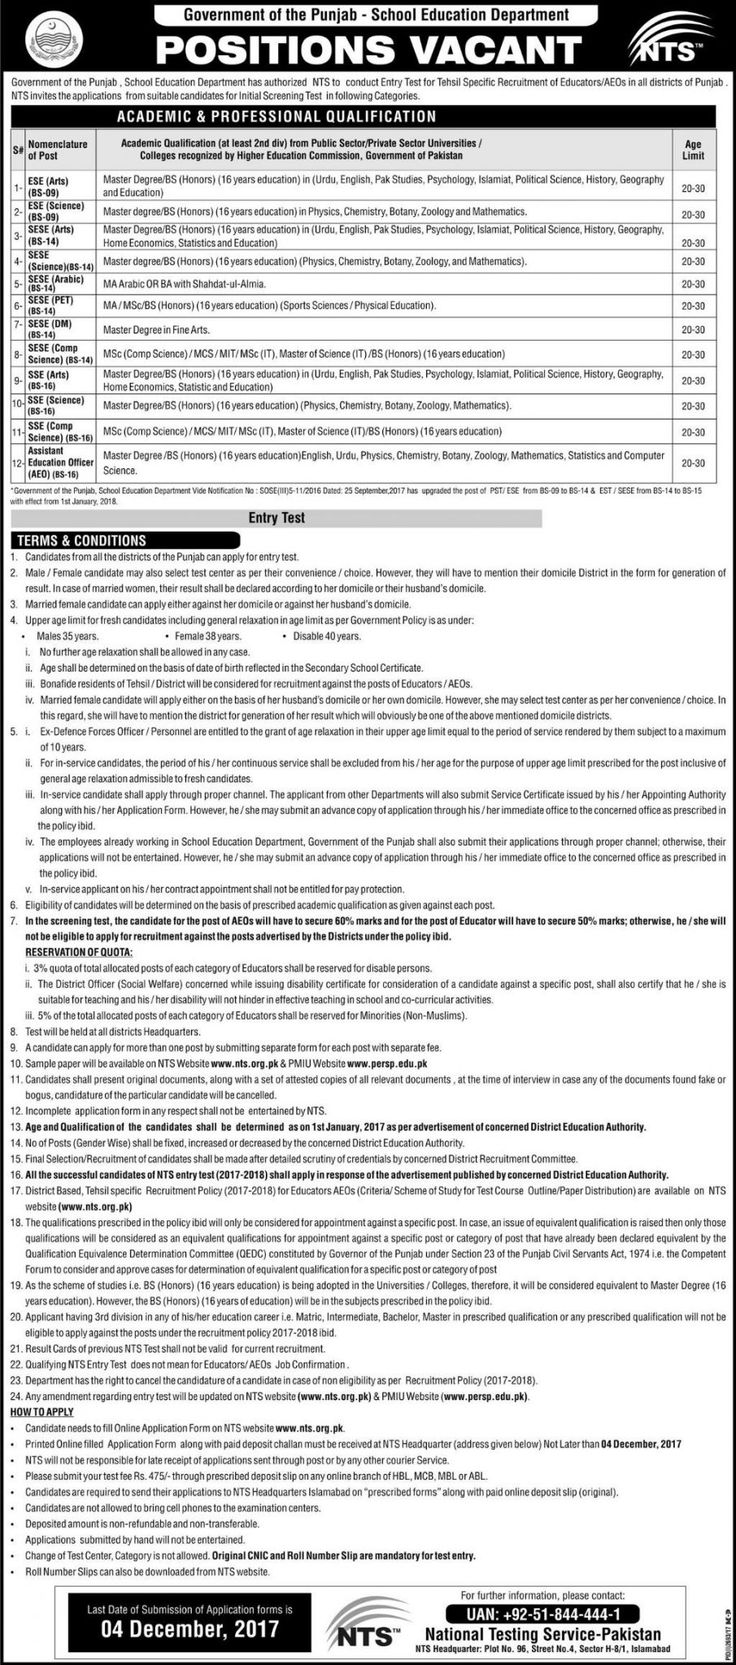 Punjab School Education Department PSED Jobs 2017 In Lahore For Teachers And Assistant Education Officer http://www.jobsfanda.com/punjab-school-education-department-psed-jobs-2017-lahore-teachers-assistant-education-officer/